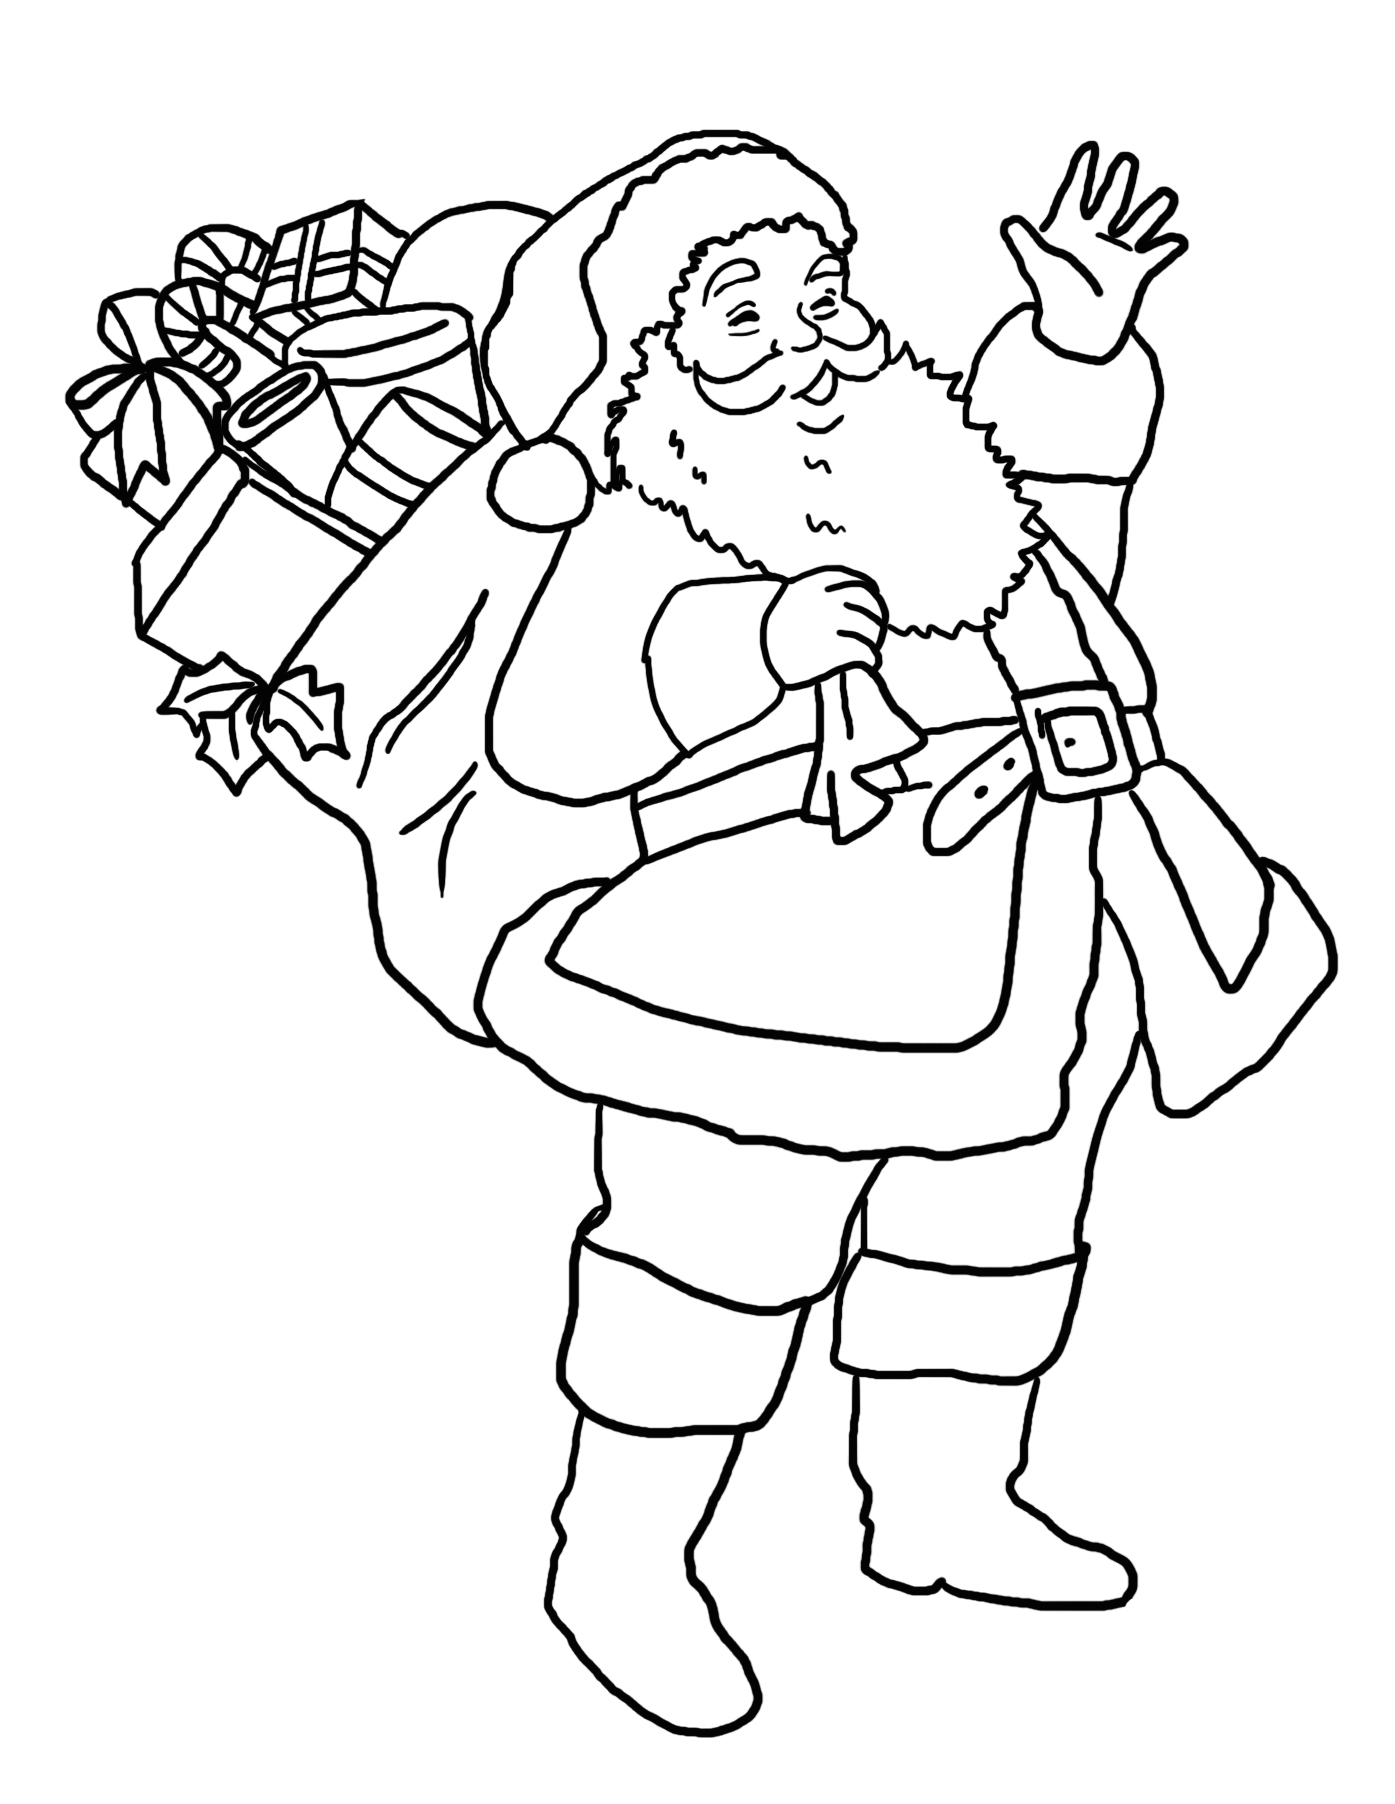 Coloring page Santa Claus with gift sack